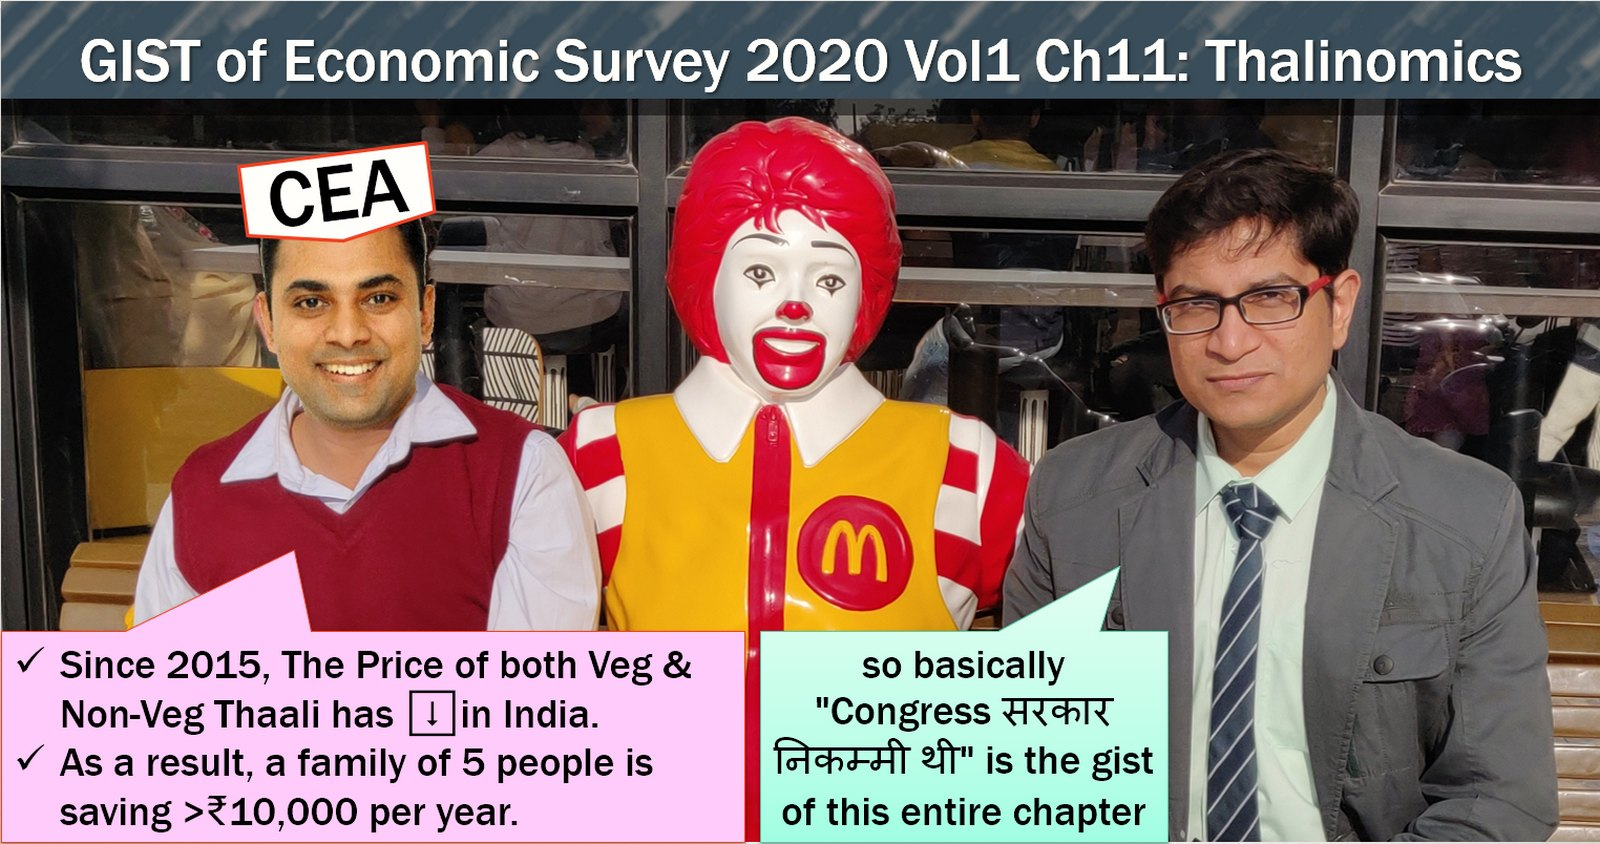 Economic Survey 2020 Vol1 Ch11: Thalinomics